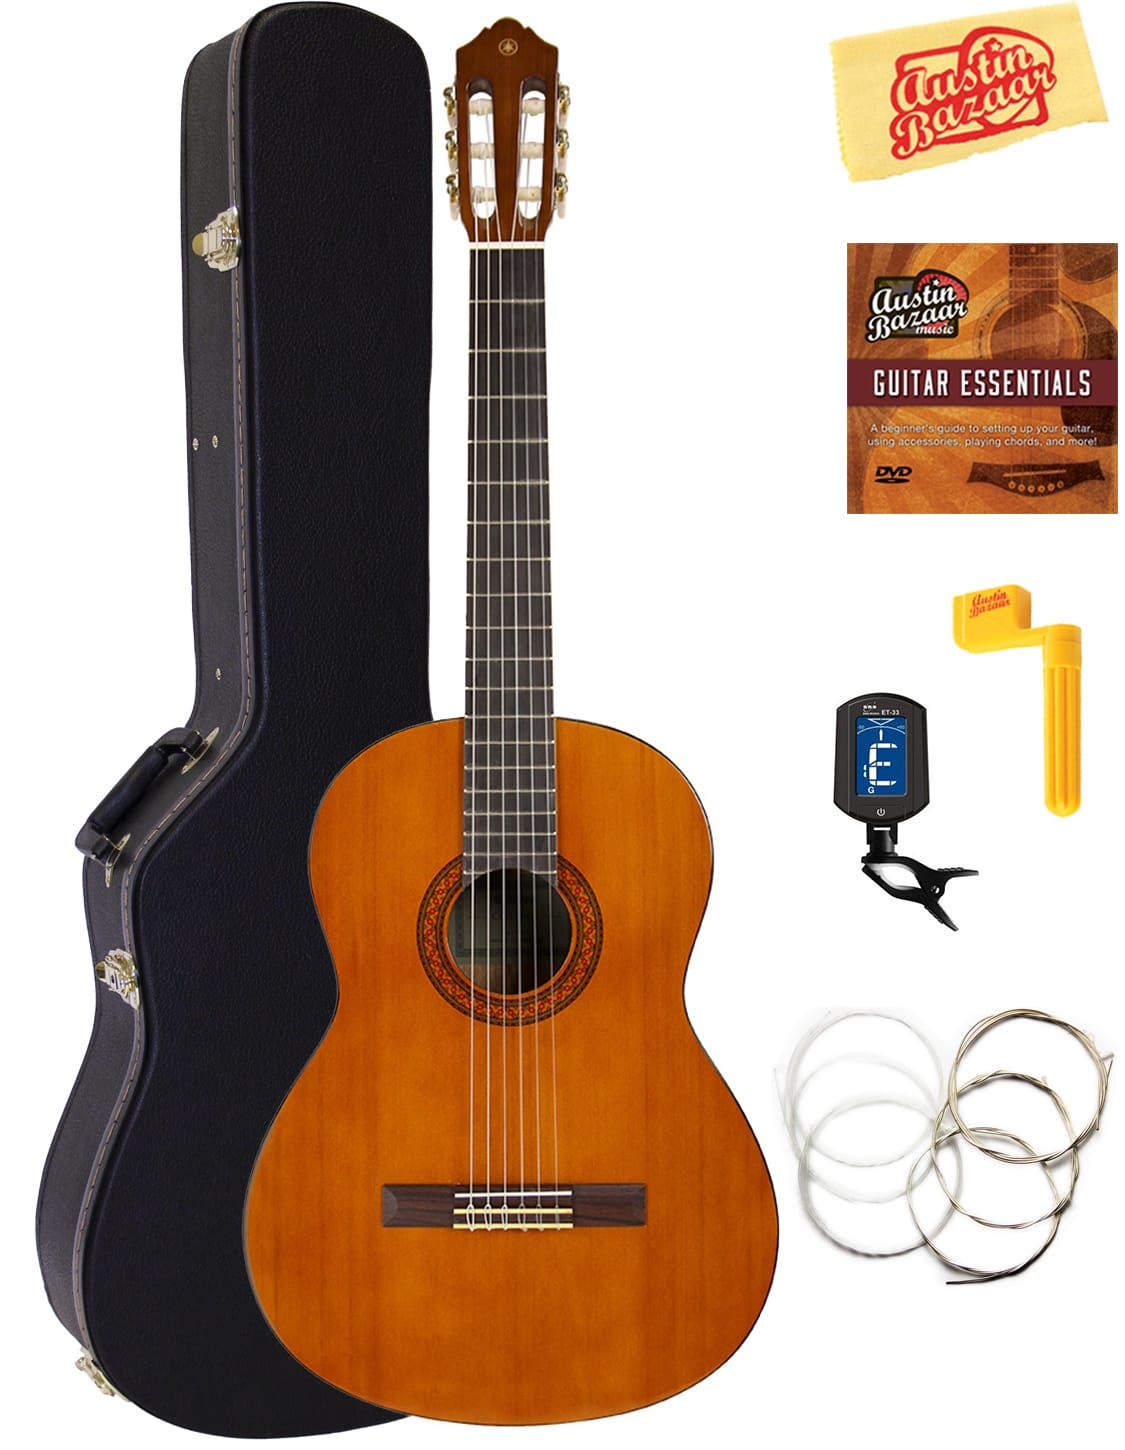 yamaha cgs104a full size classical guitar w hard case reverb. Black Bedroom Furniture Sets. Home Design Ideas